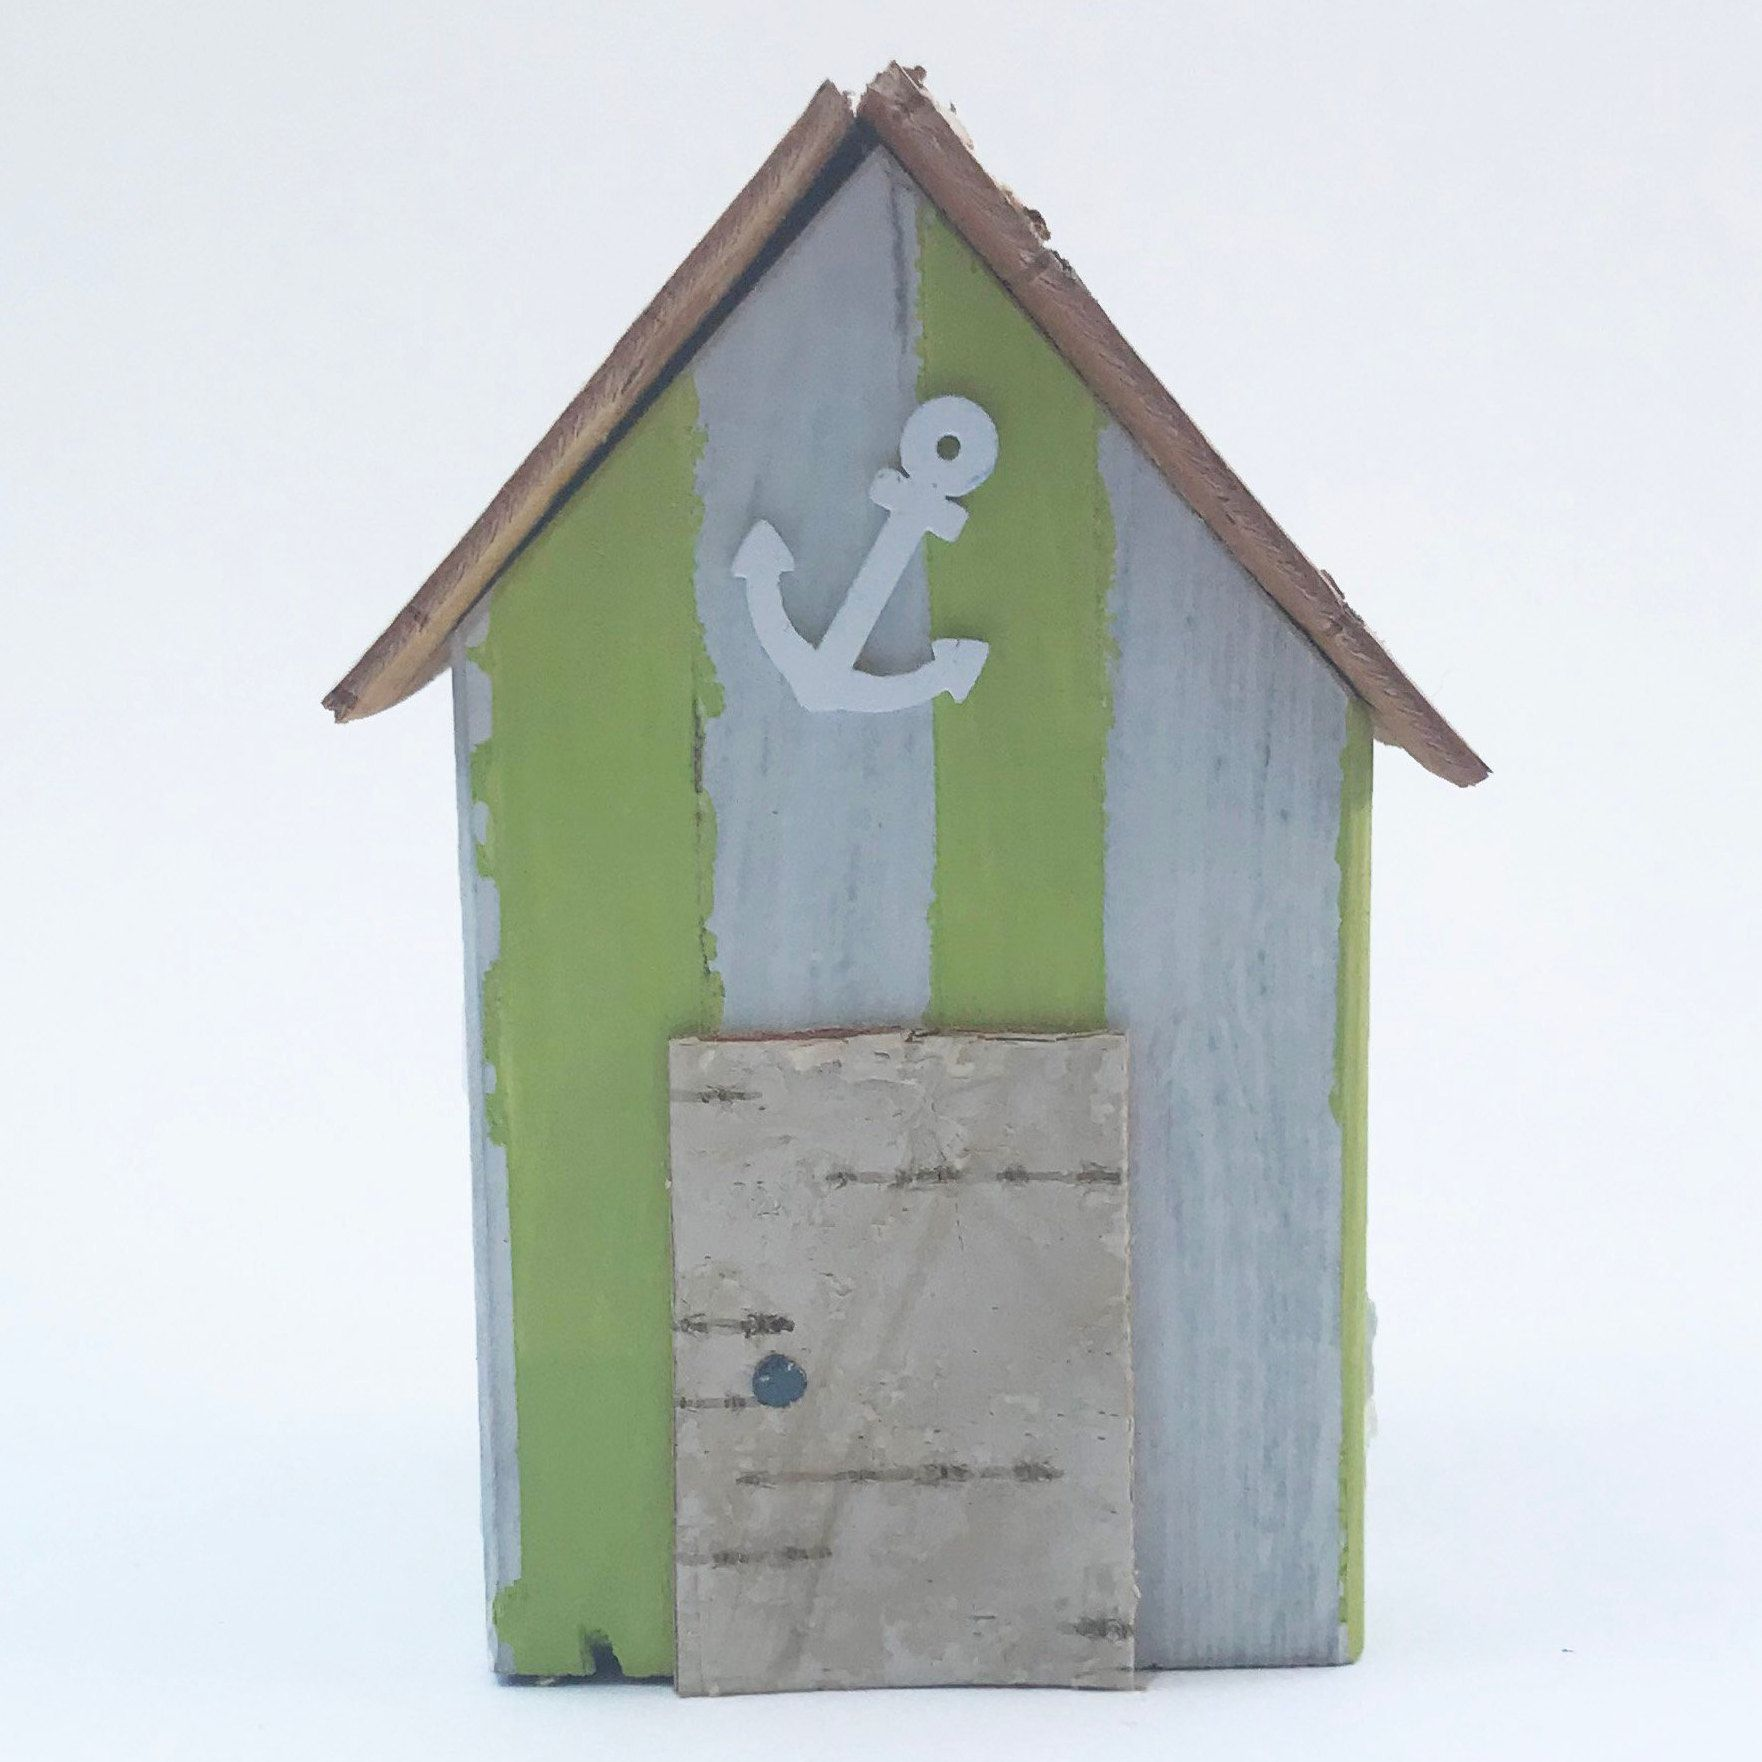 Beach Hut Outdoor Garden Decor Bathroom Ornaments Etsy Beach Bathroom Decor Decor Bathroom Ornaments